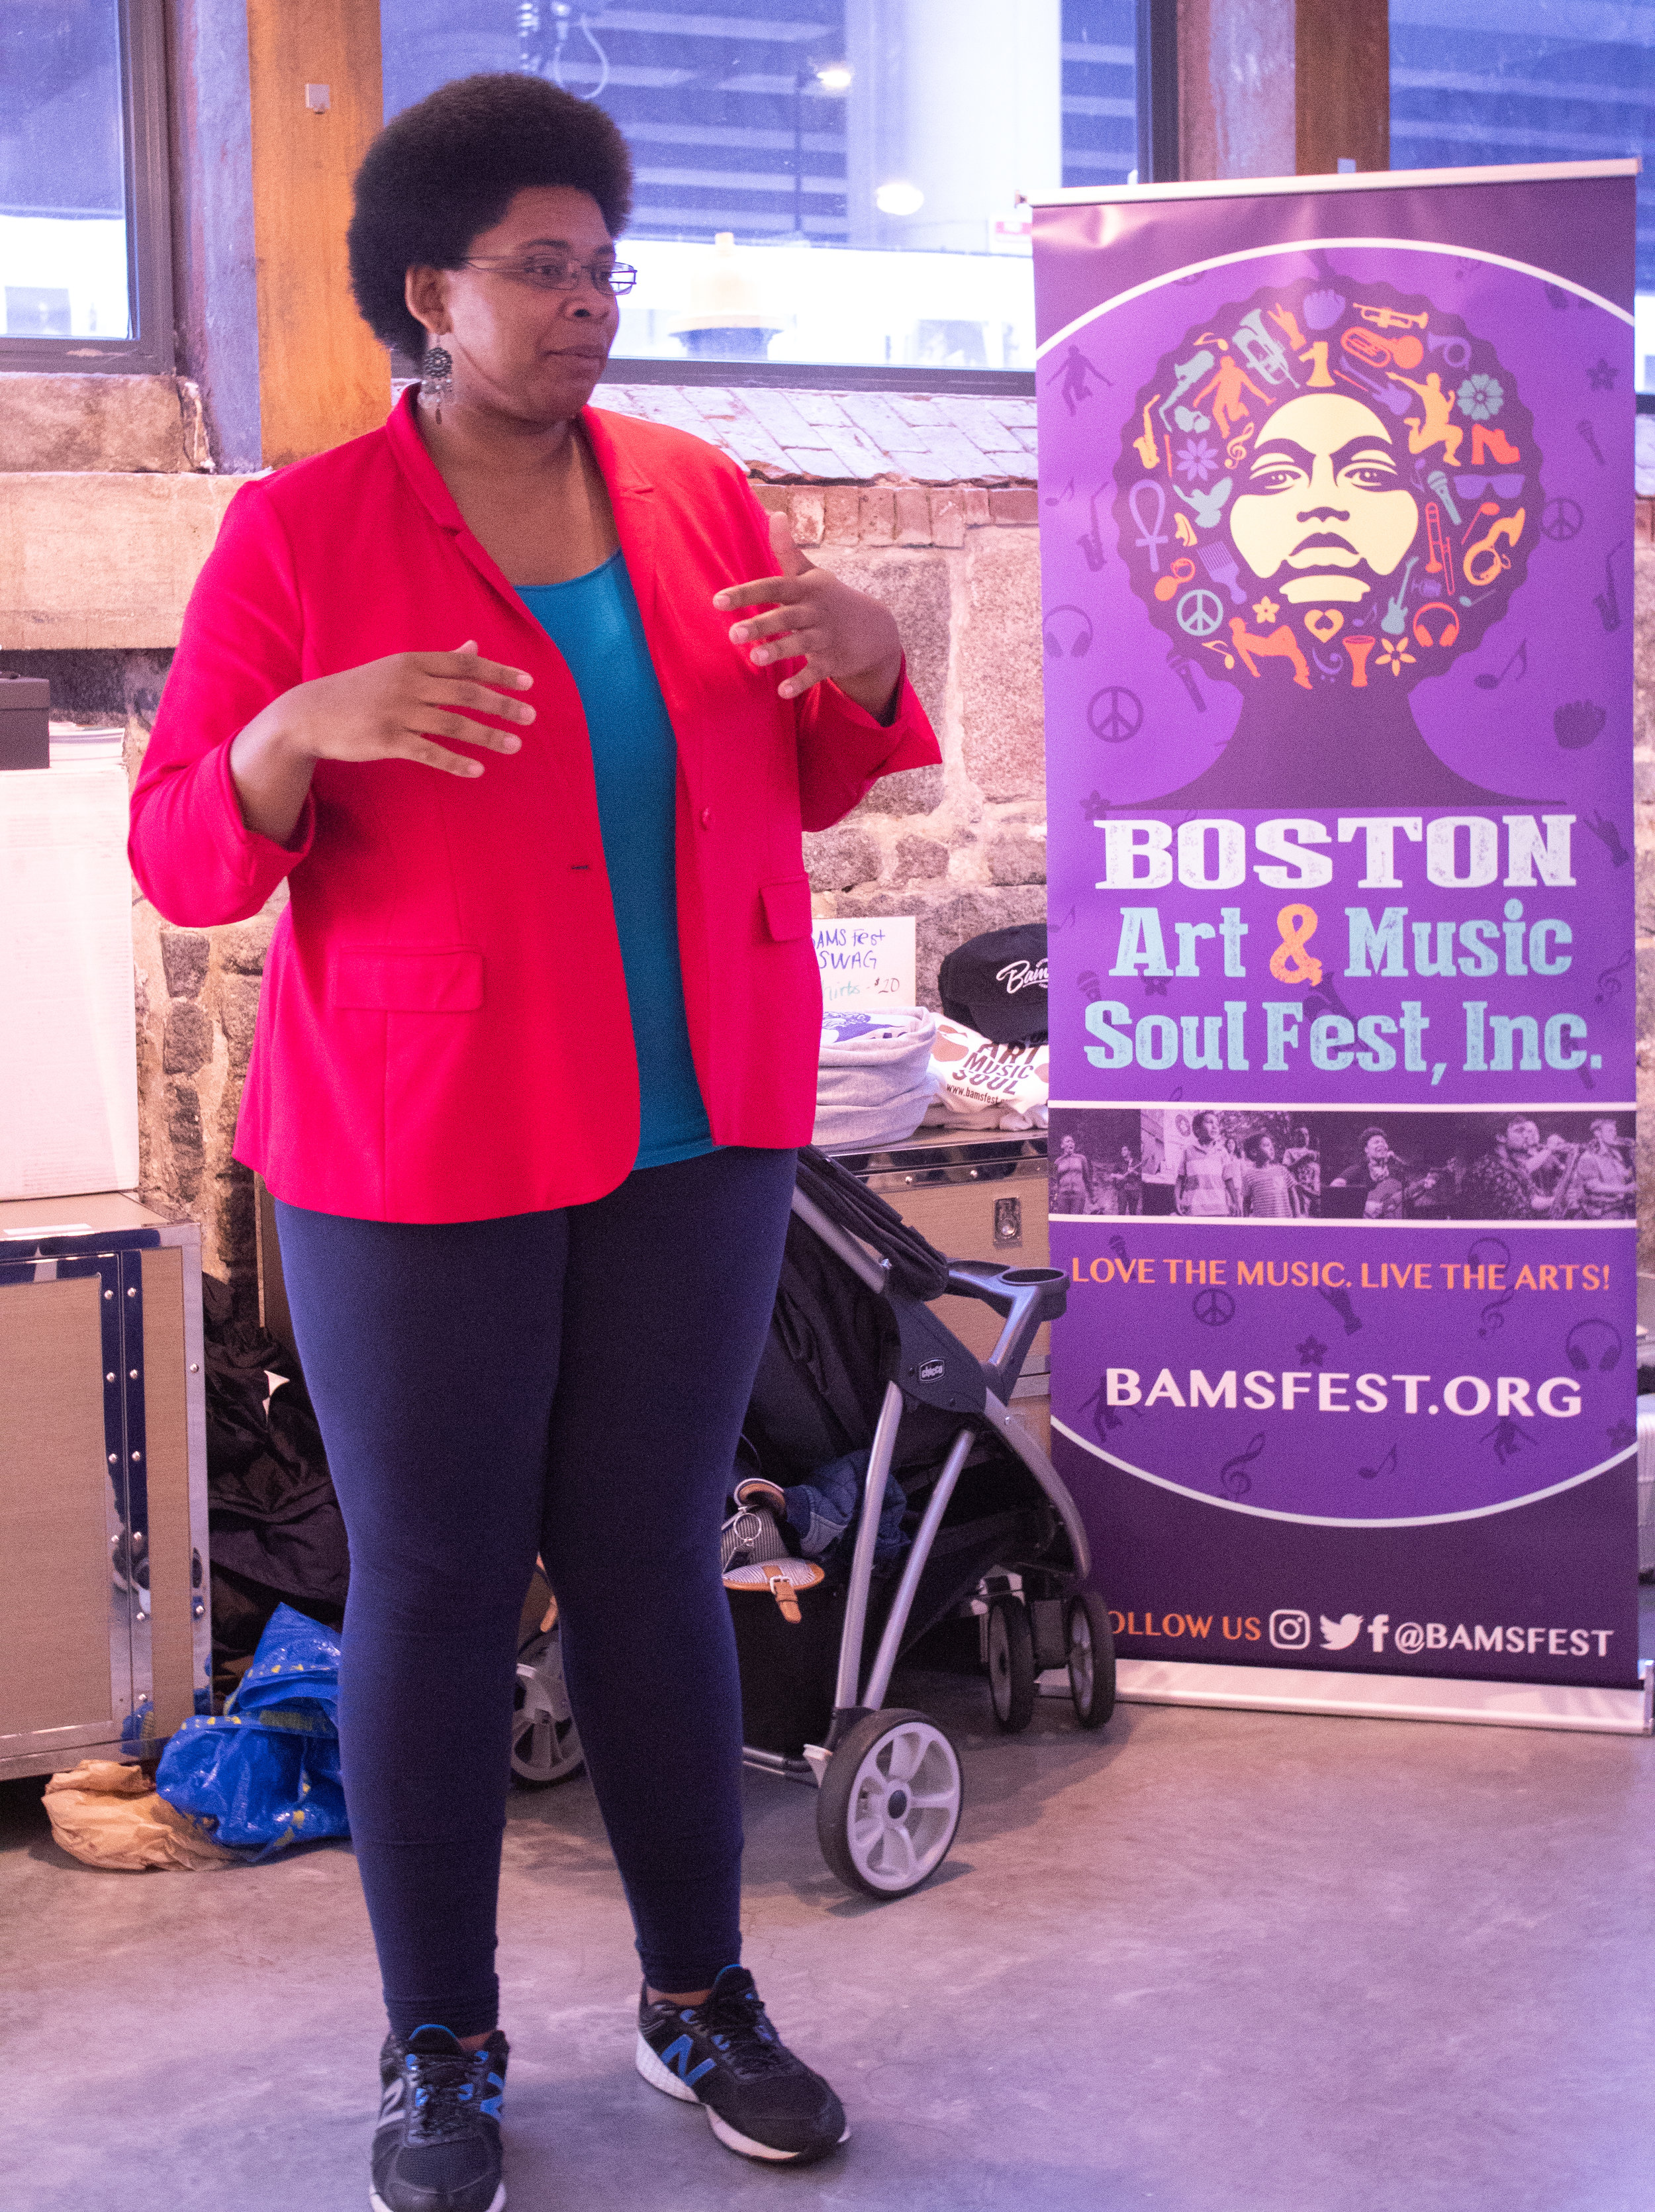 Catherine Morris, founder of BAMS Fest discusses her journey to get BAMS Fest from an idea to fruition.